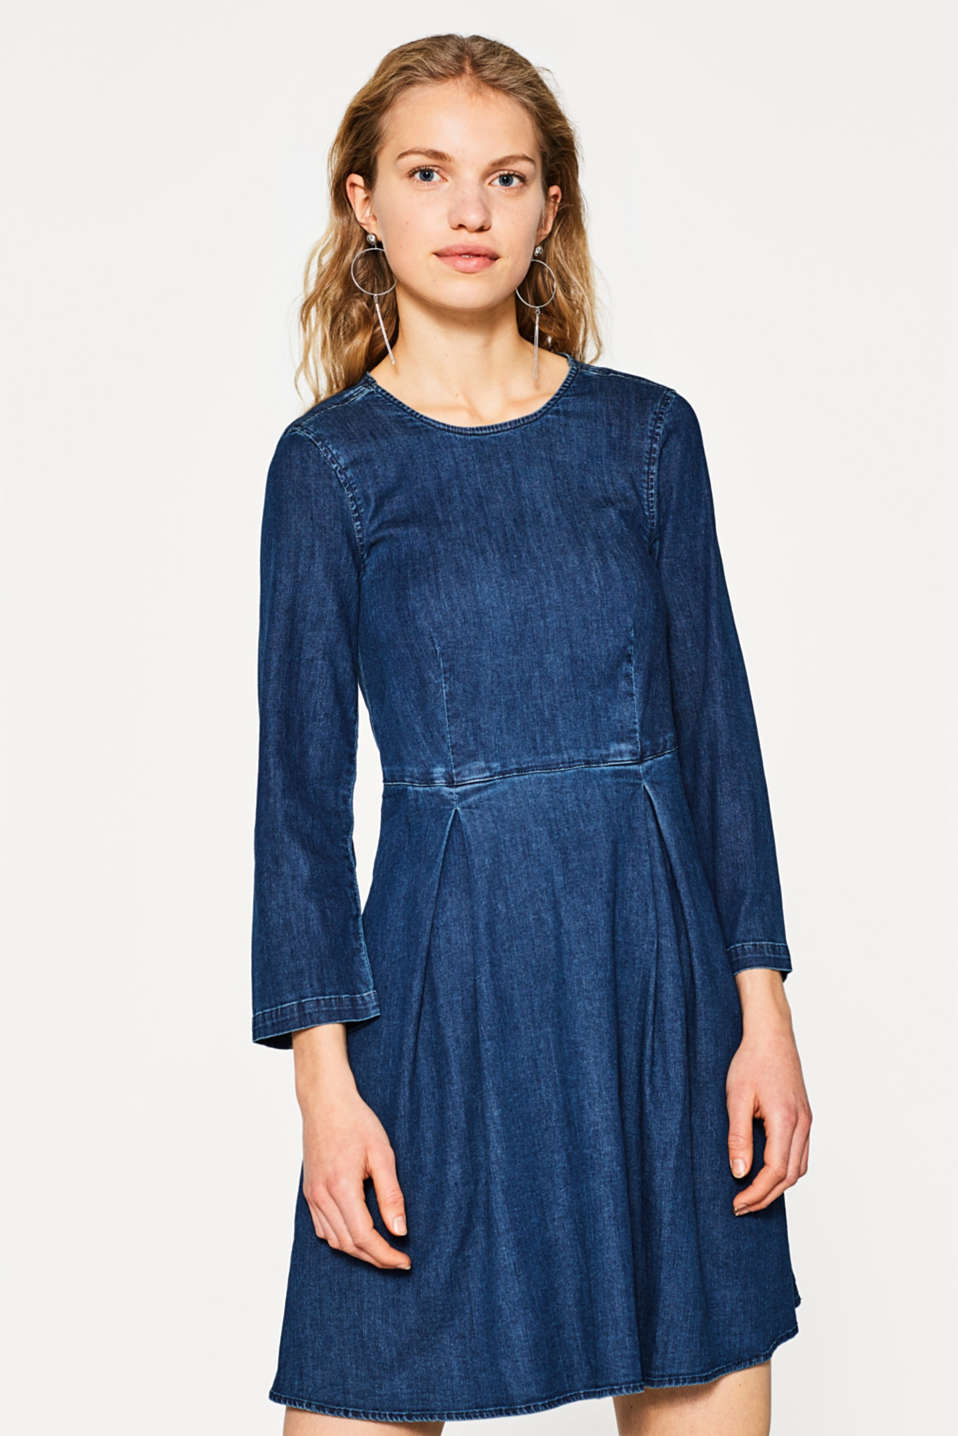 Esprit - Robe en jean cool en coton stretch